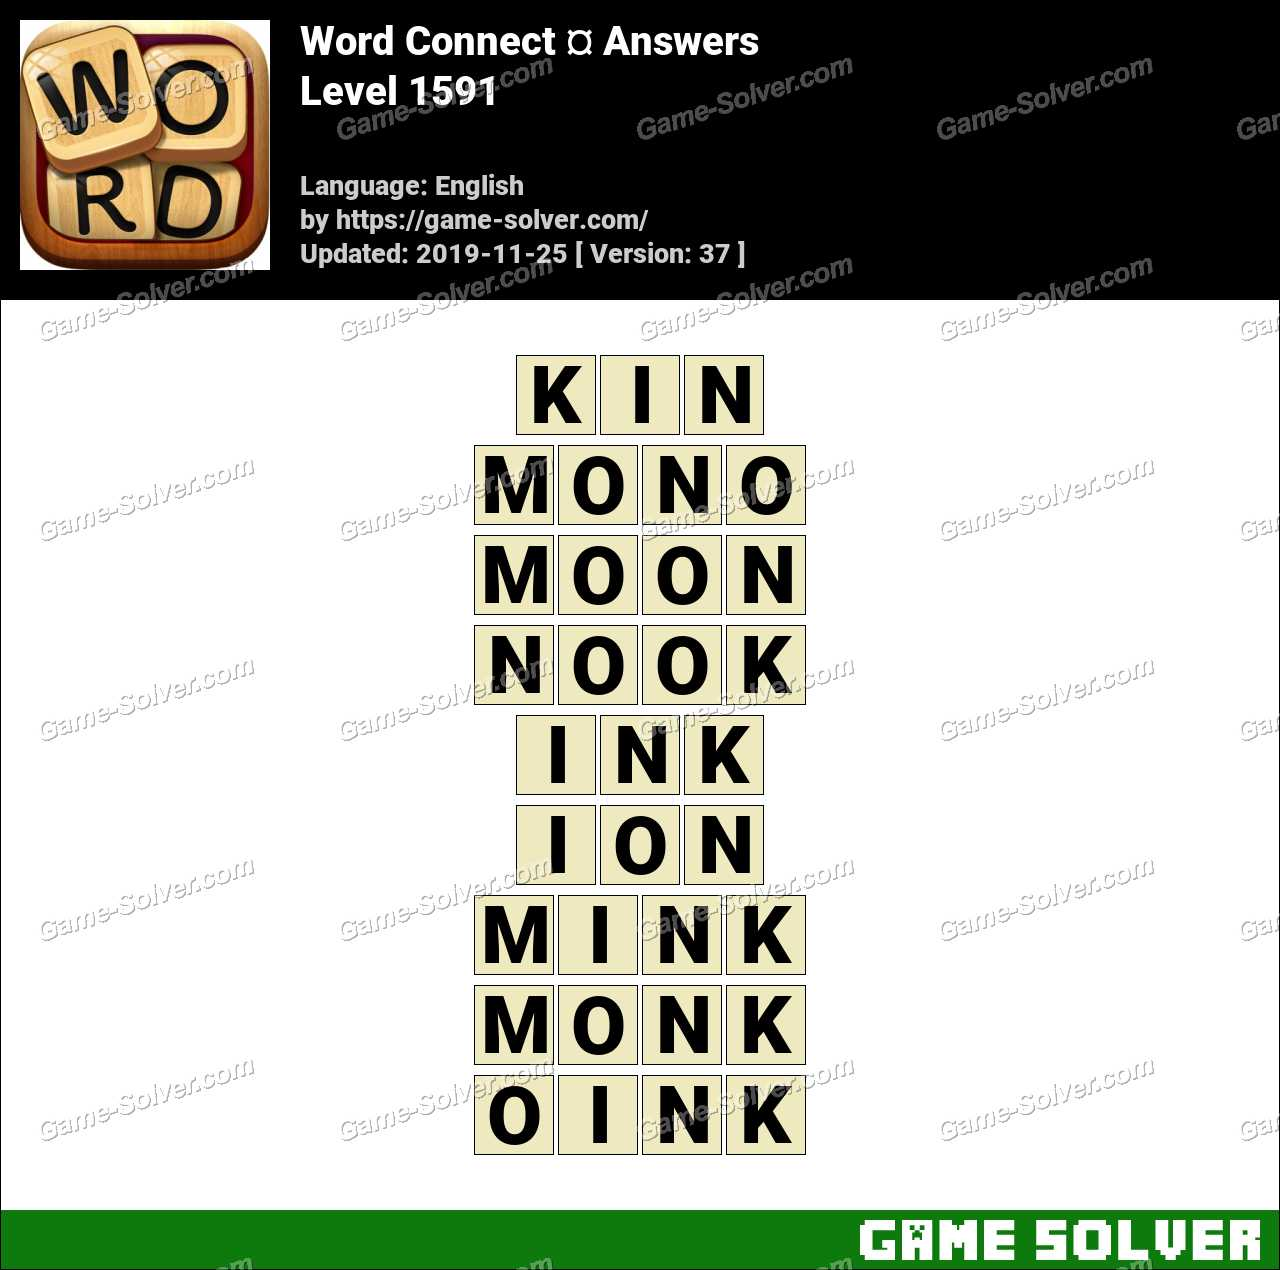 Word Connect Level 1591 Answers